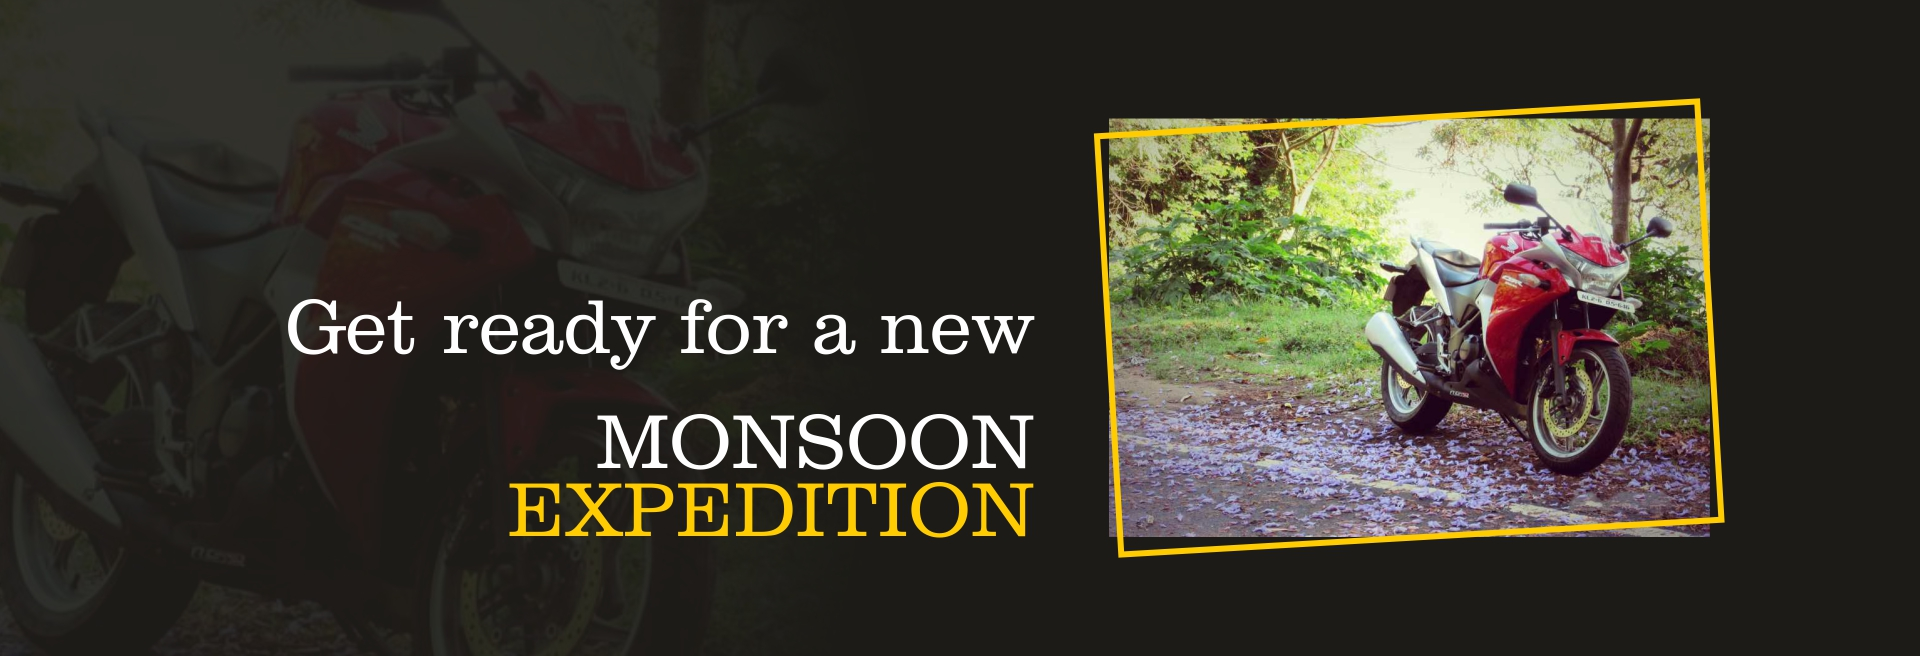 monsoon,honda bike,travel with bike,destination near pune